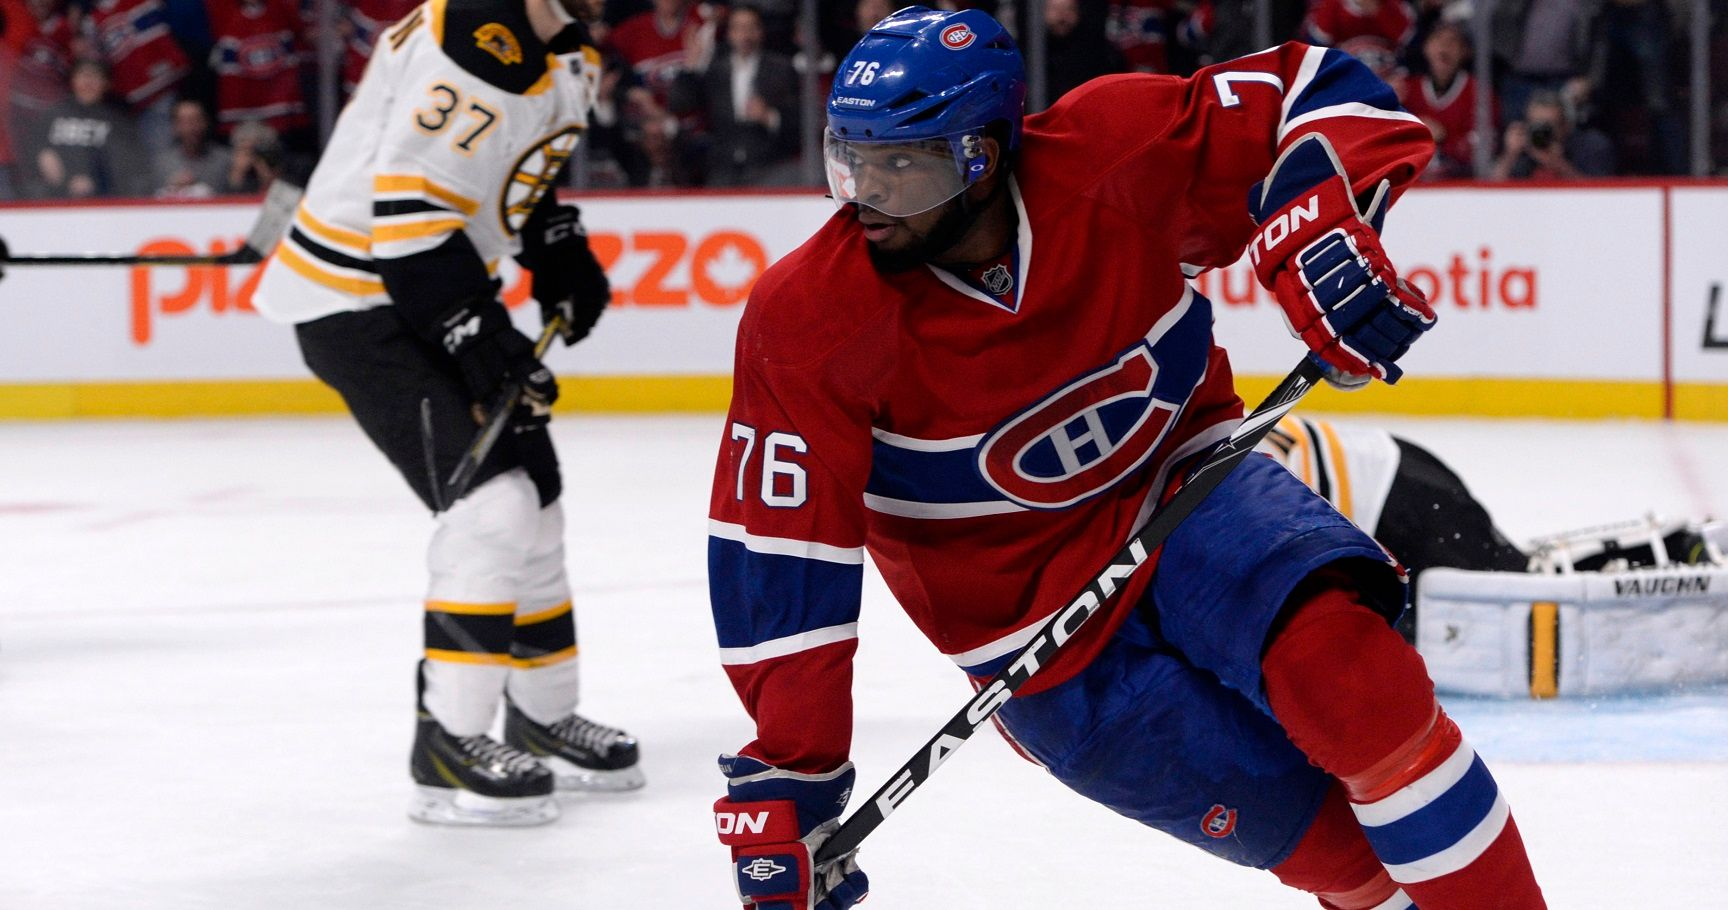 pictures-of-black-hockey-players